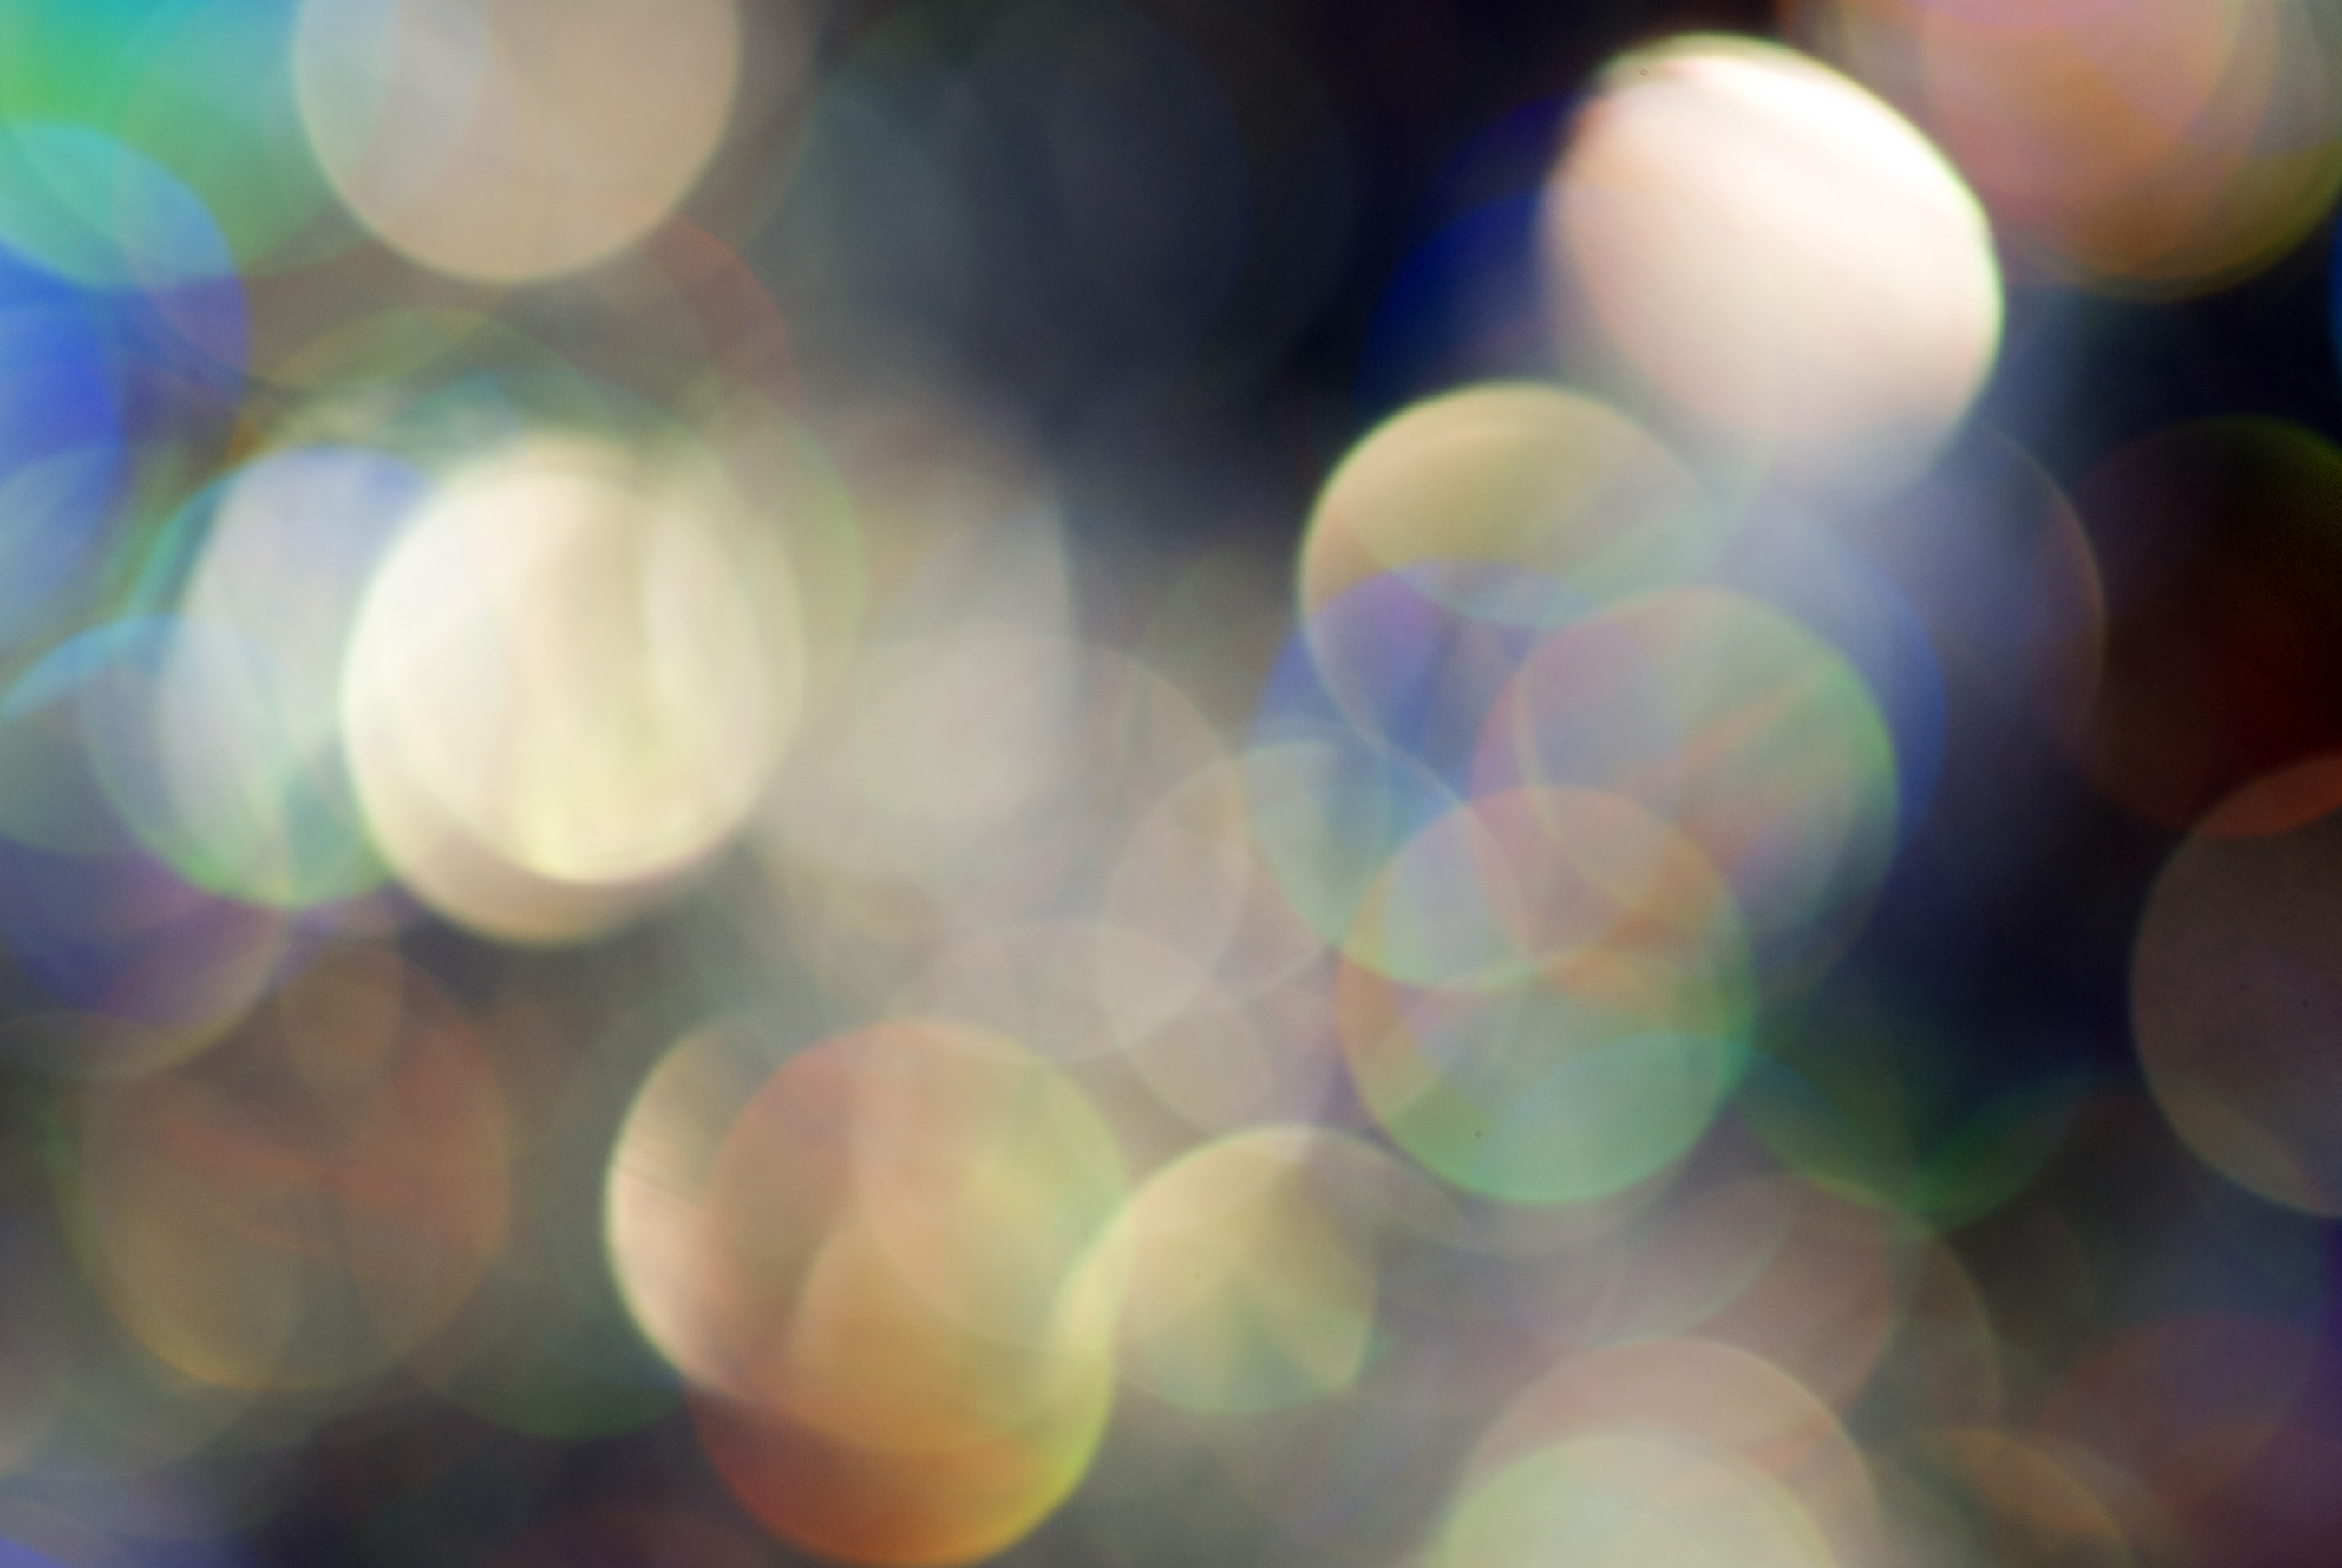 Free Stock Photo 1864-light tripping | freeimageslive